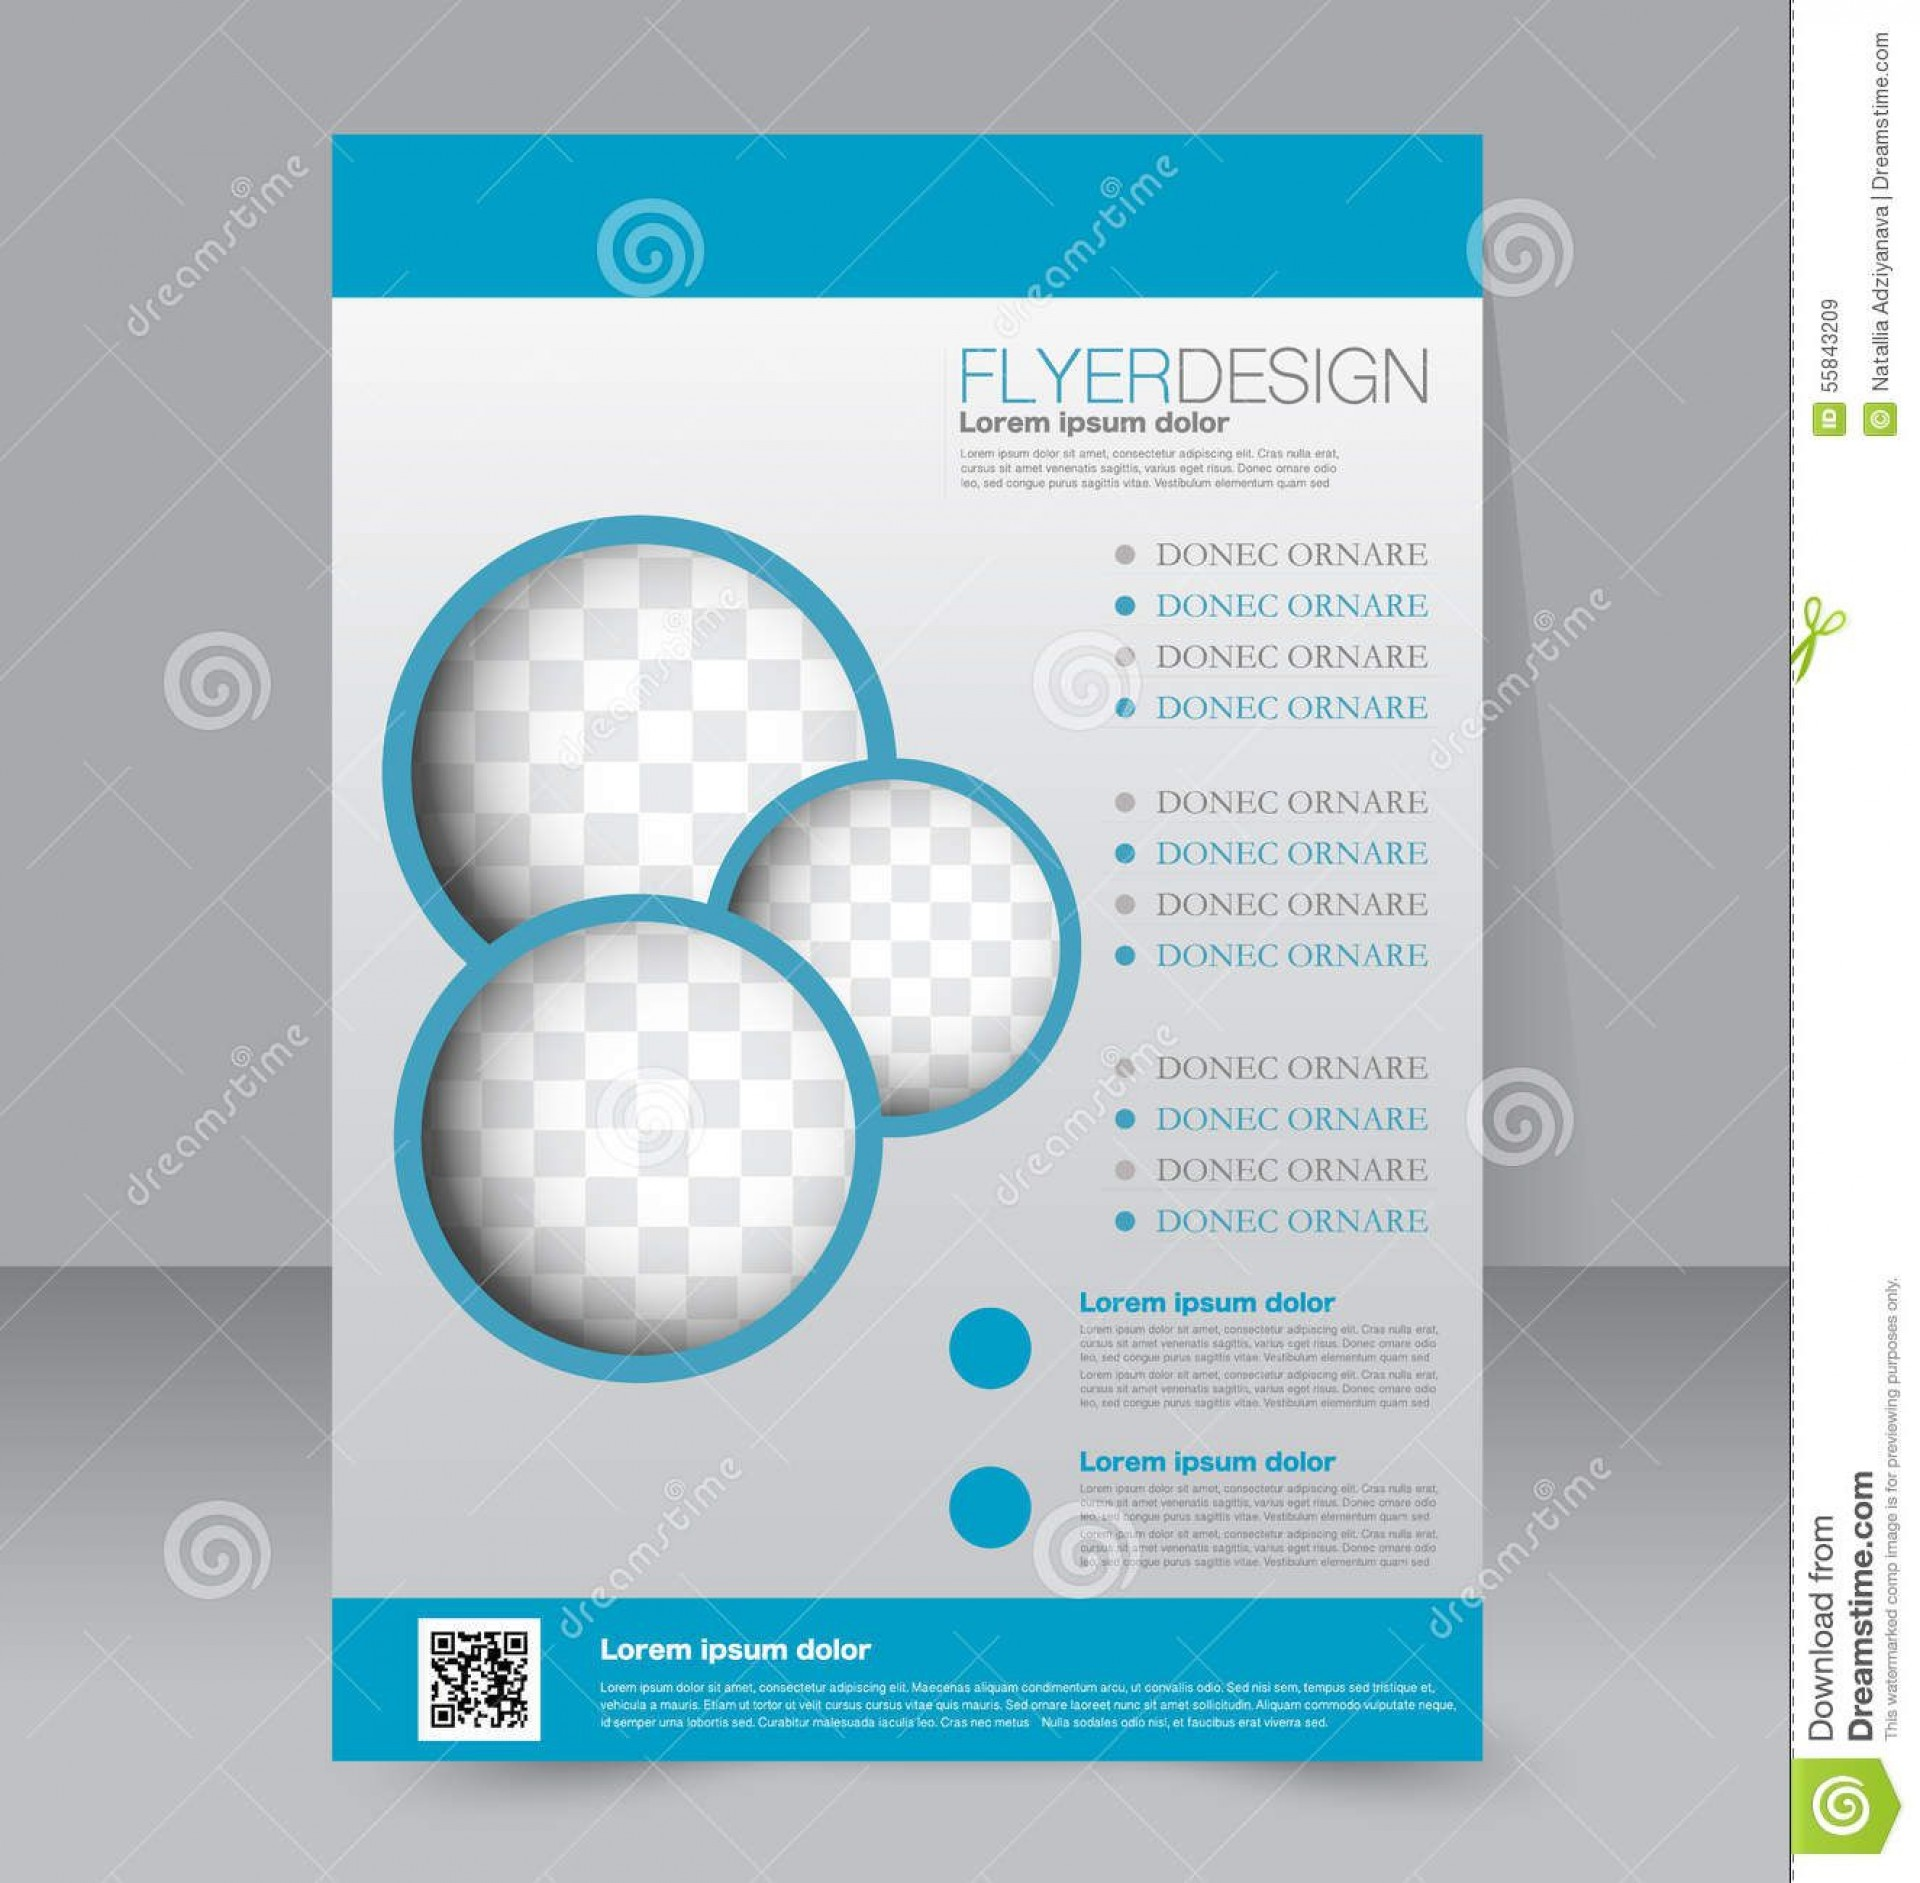 001 Exceptional Poster Template Free Download Inspiration  A0 Scientific Design Word1920